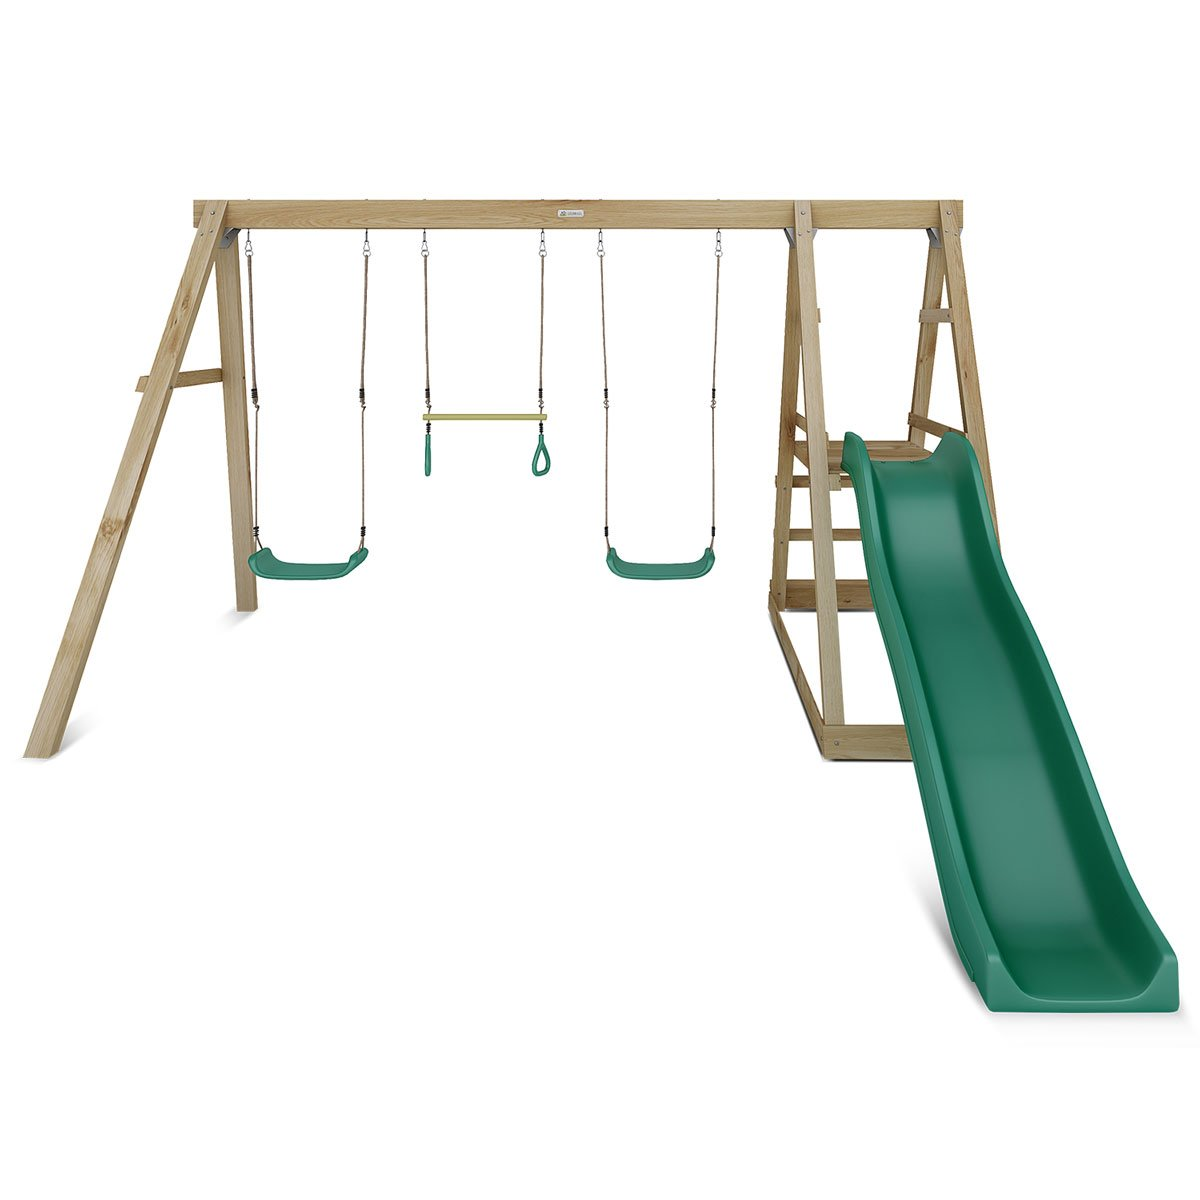 Lifespan Kids Winston 4-Station Timber Swing Set with Slide